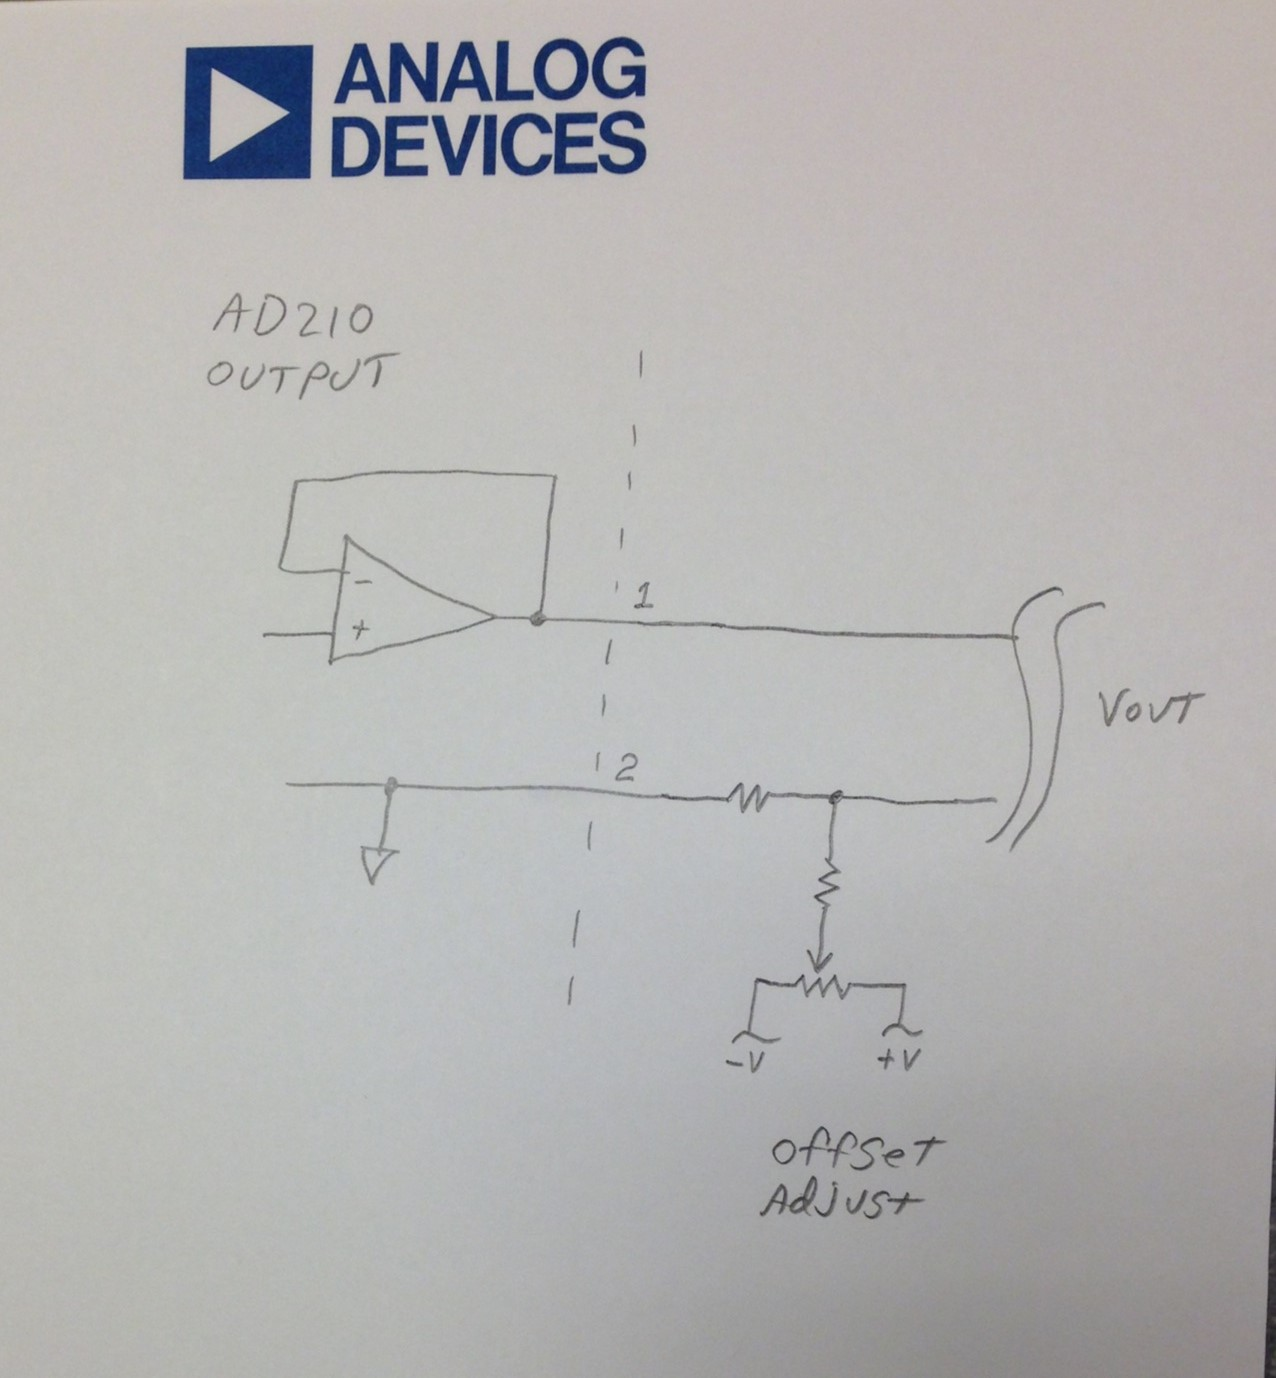 Ad210 Output Adjustment Circuit Documents Amplifiers Engineerzone Ac Coupling And Offset Voltage In Amplifier A